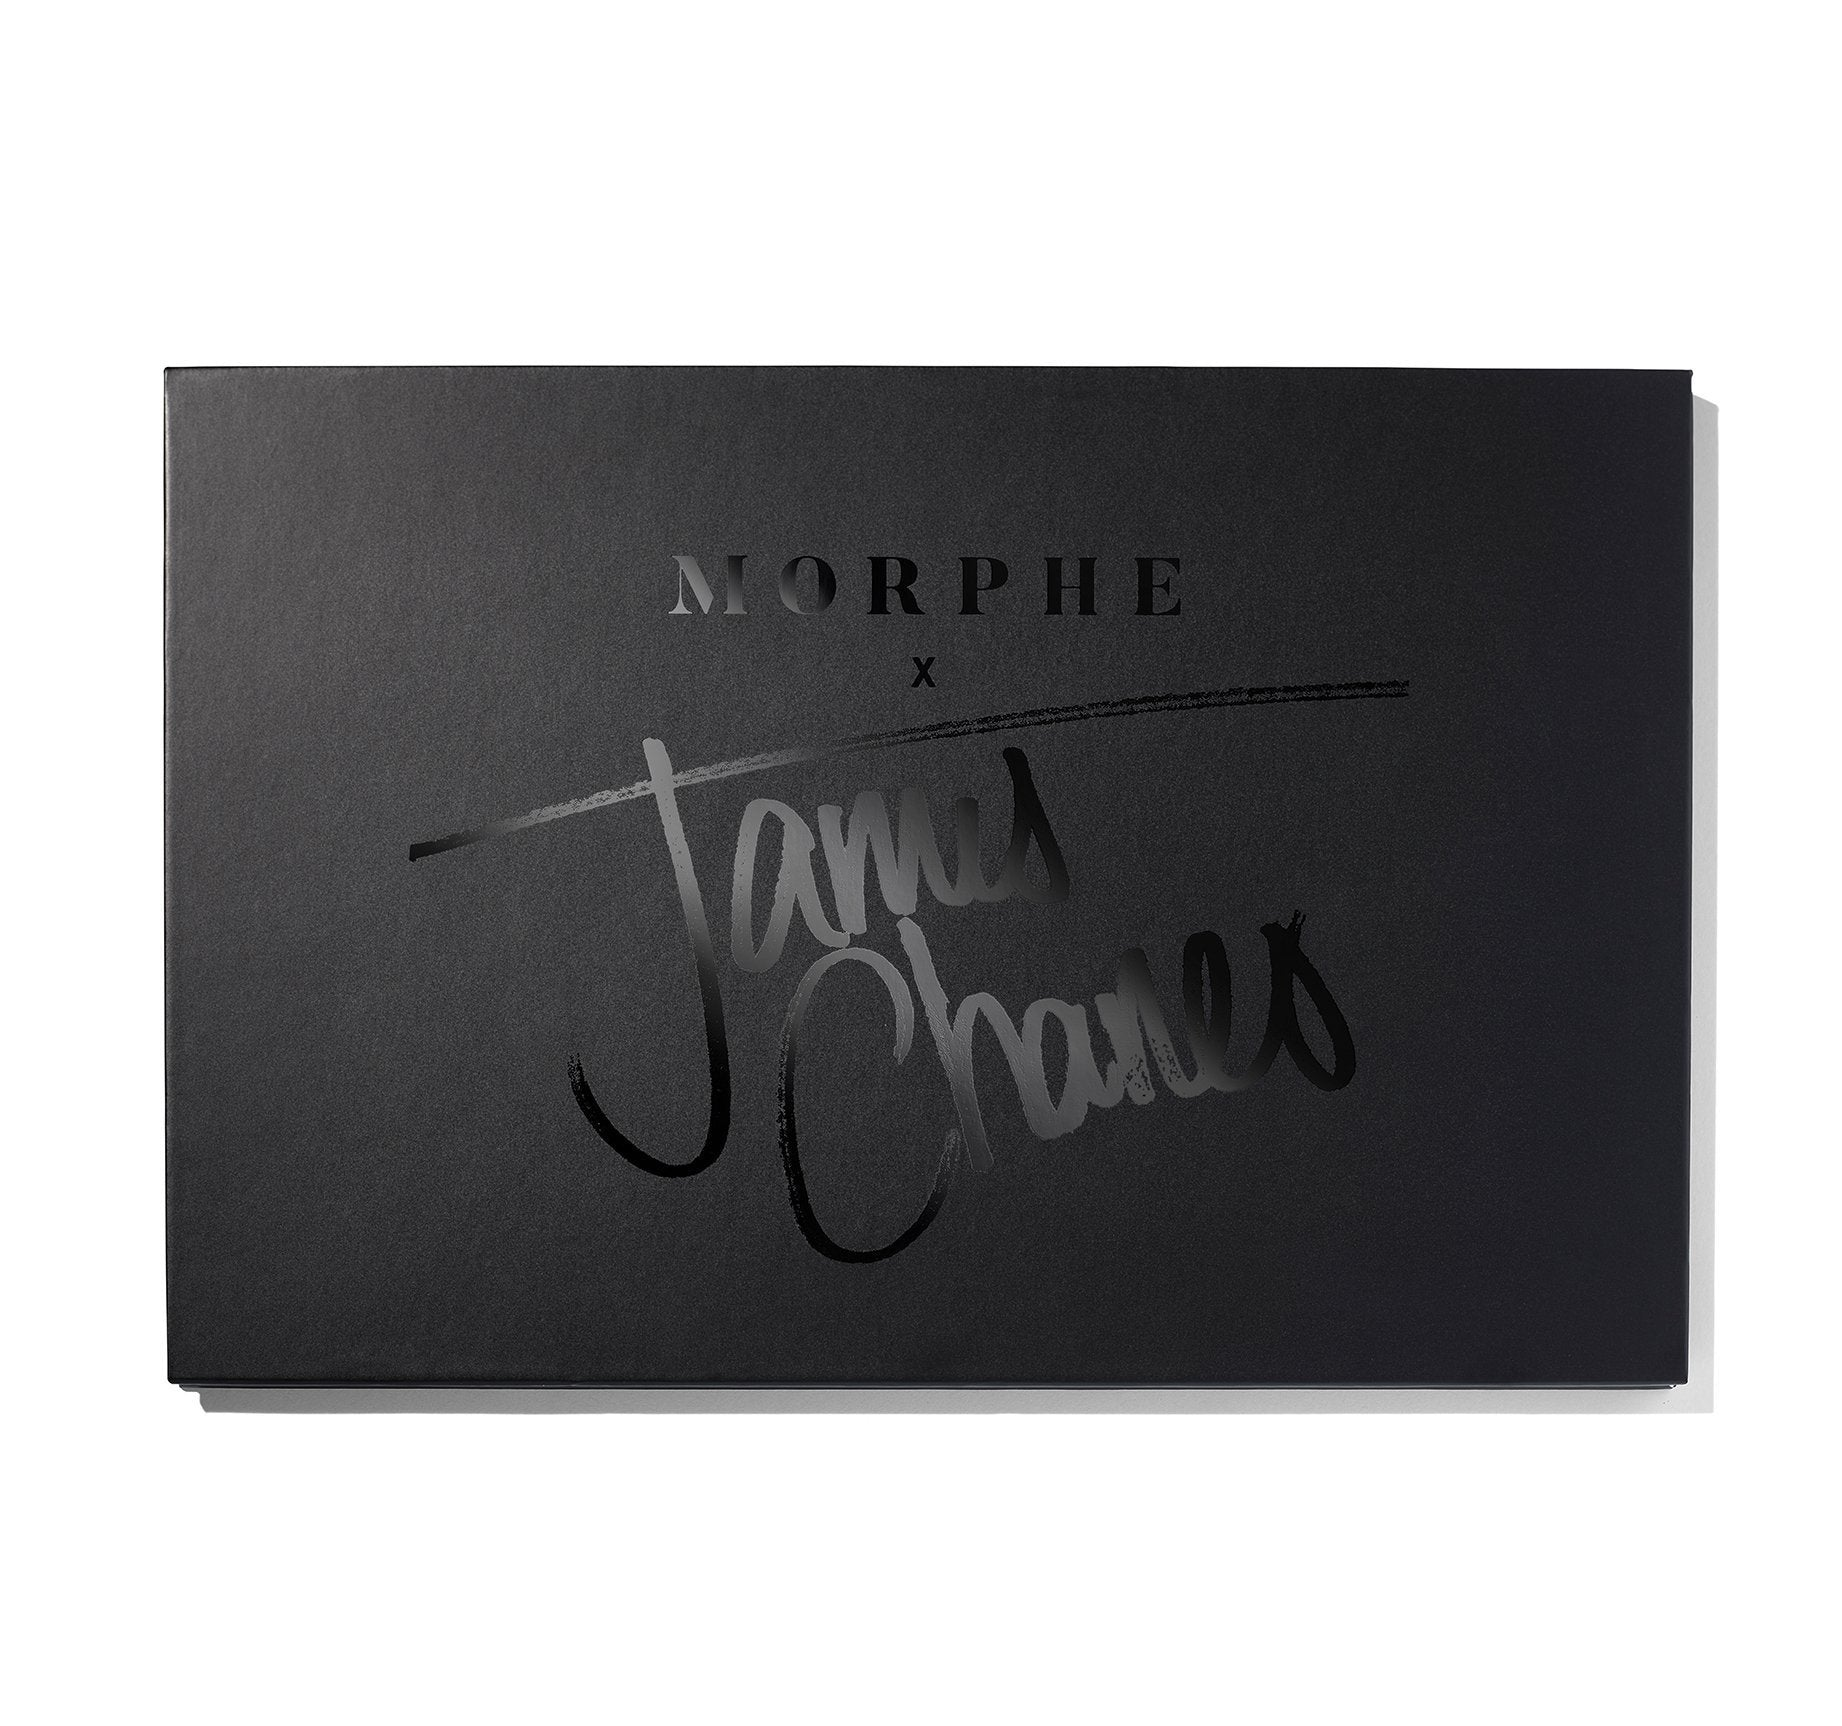 The James Charles Eyeshadow Palette Morphe X James Charles Ne doit pas être confondu avec orphée. the james charles palette